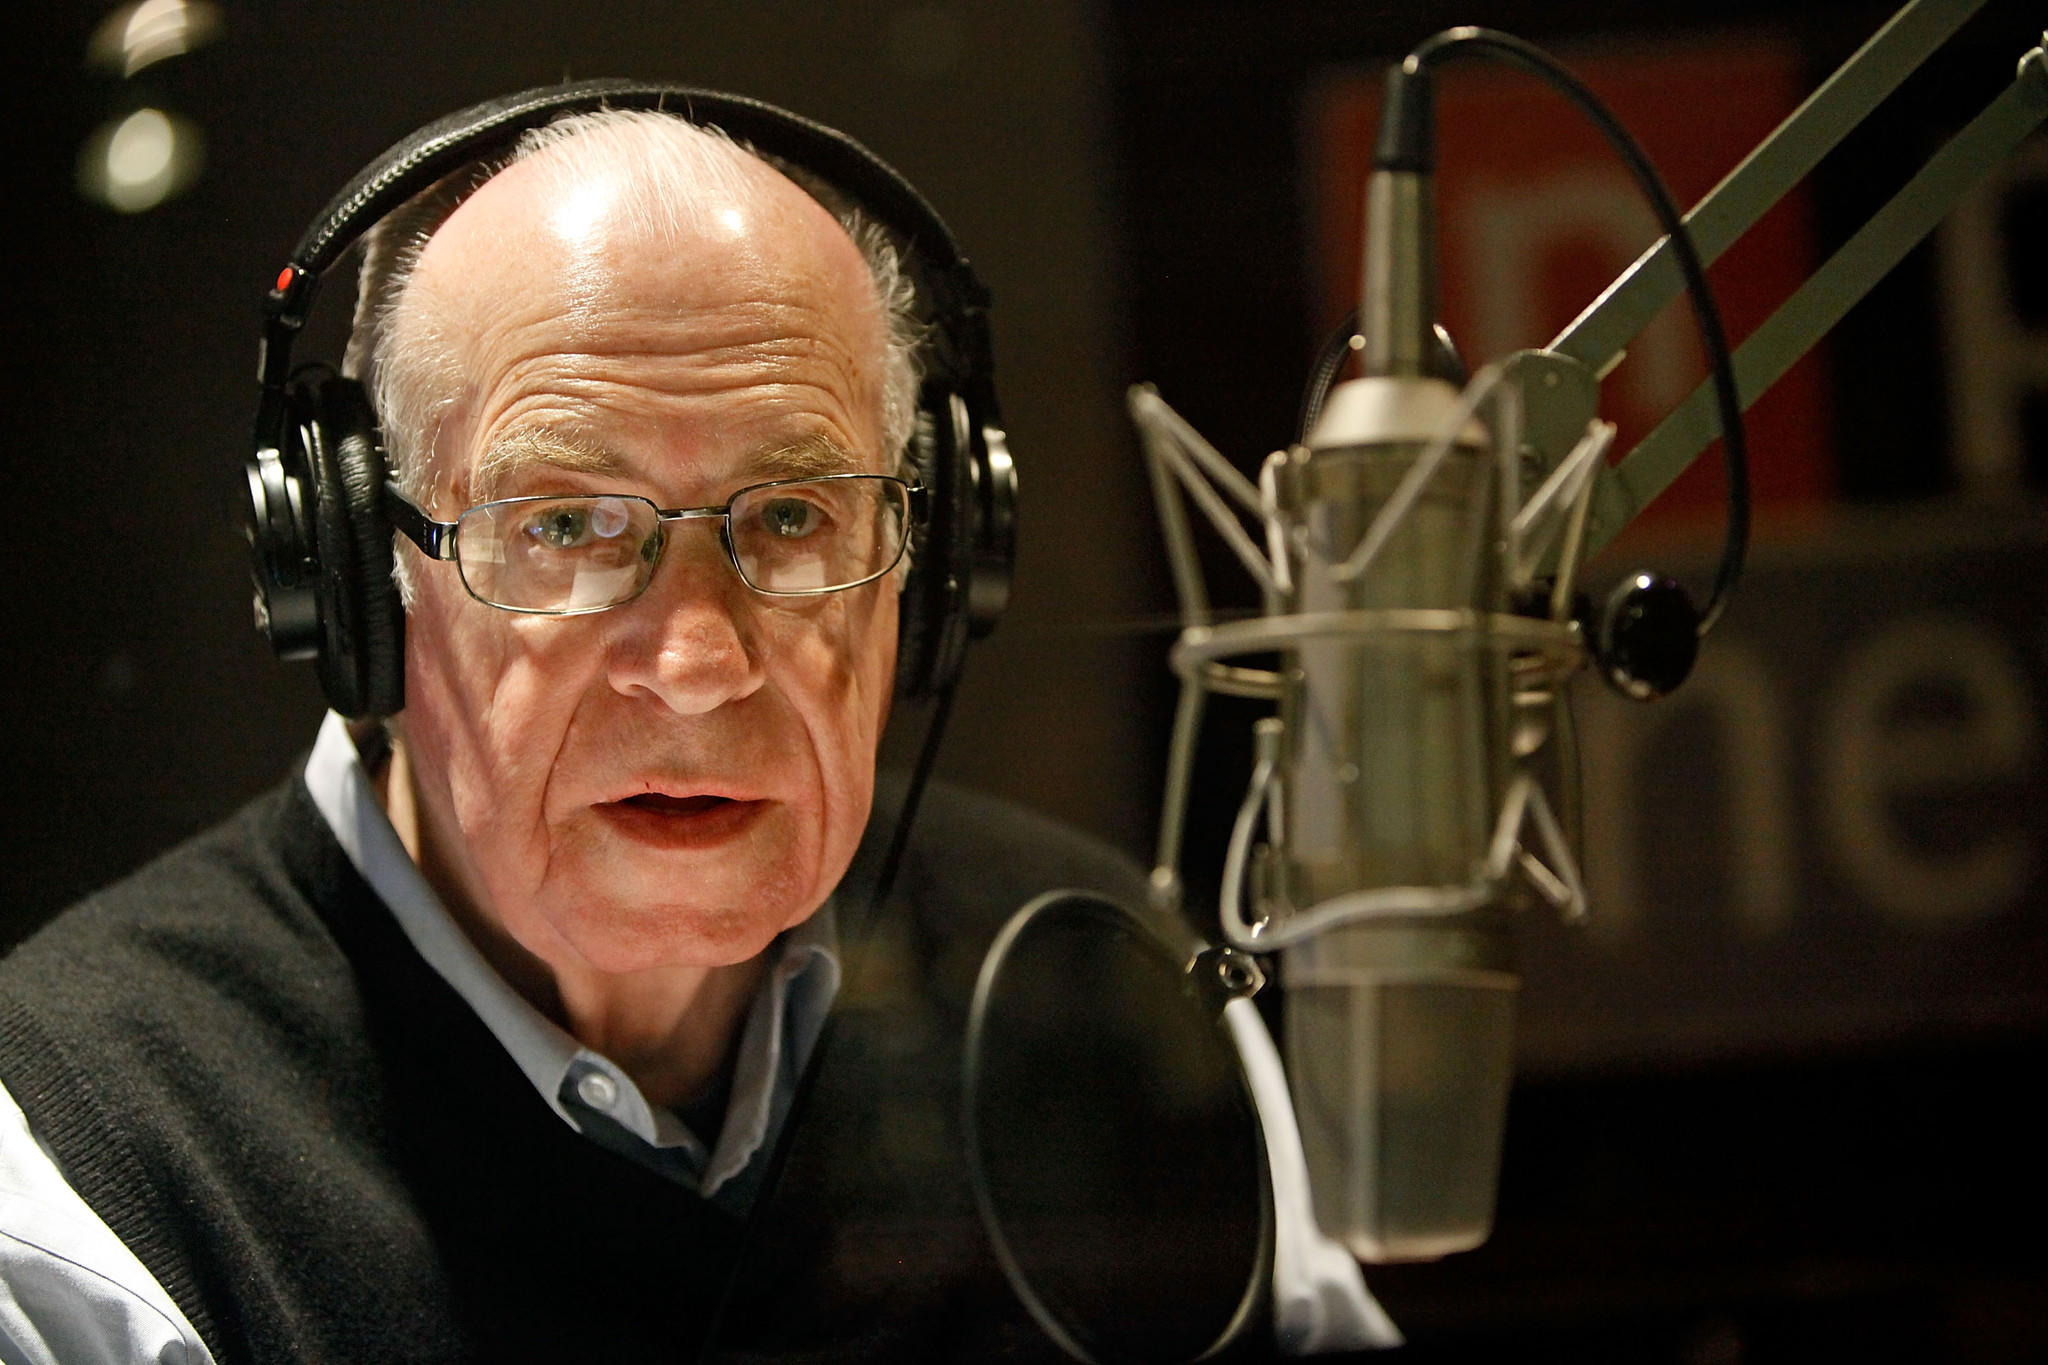 National Public Radio's Carl Kasell delivers one of his last newscasts during the Morning Edition program at NPR.